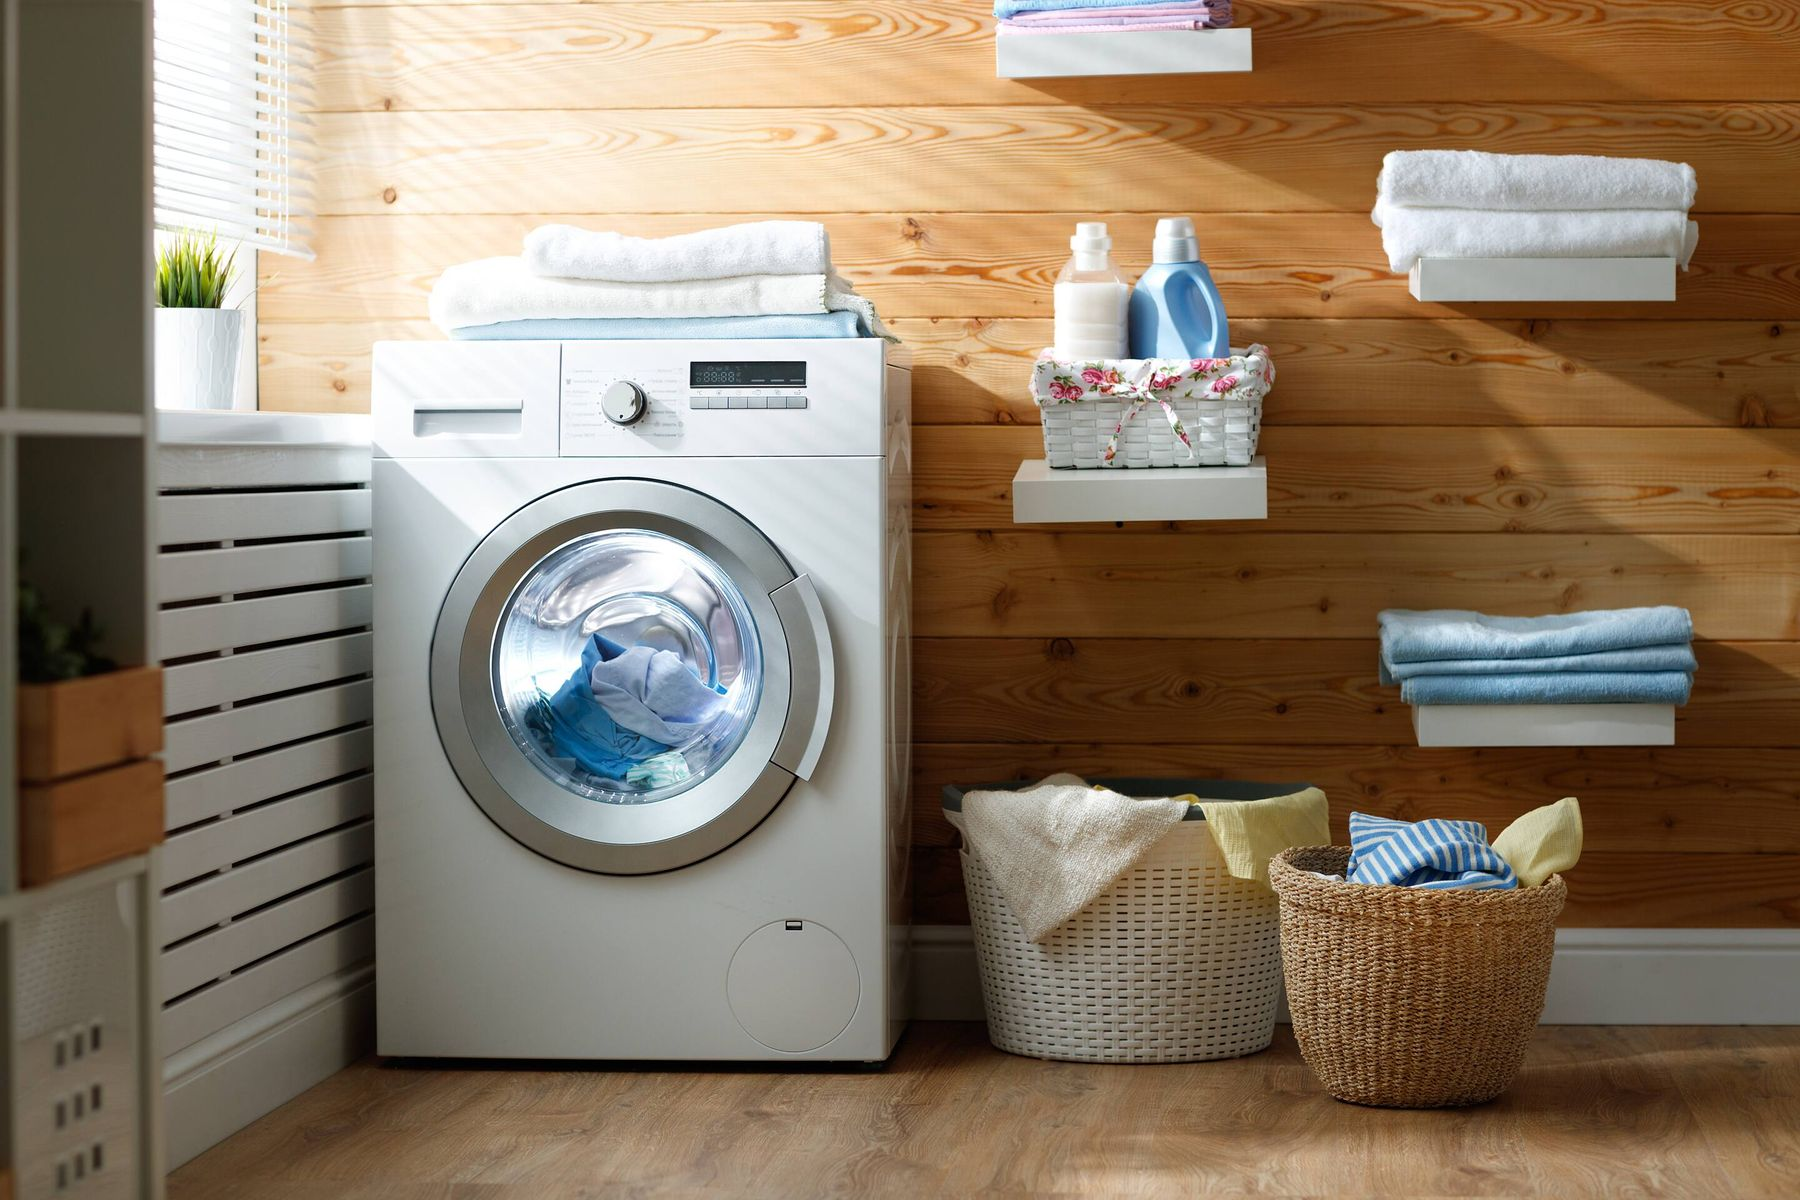 Top load washing Machine vs Front-load washing machine